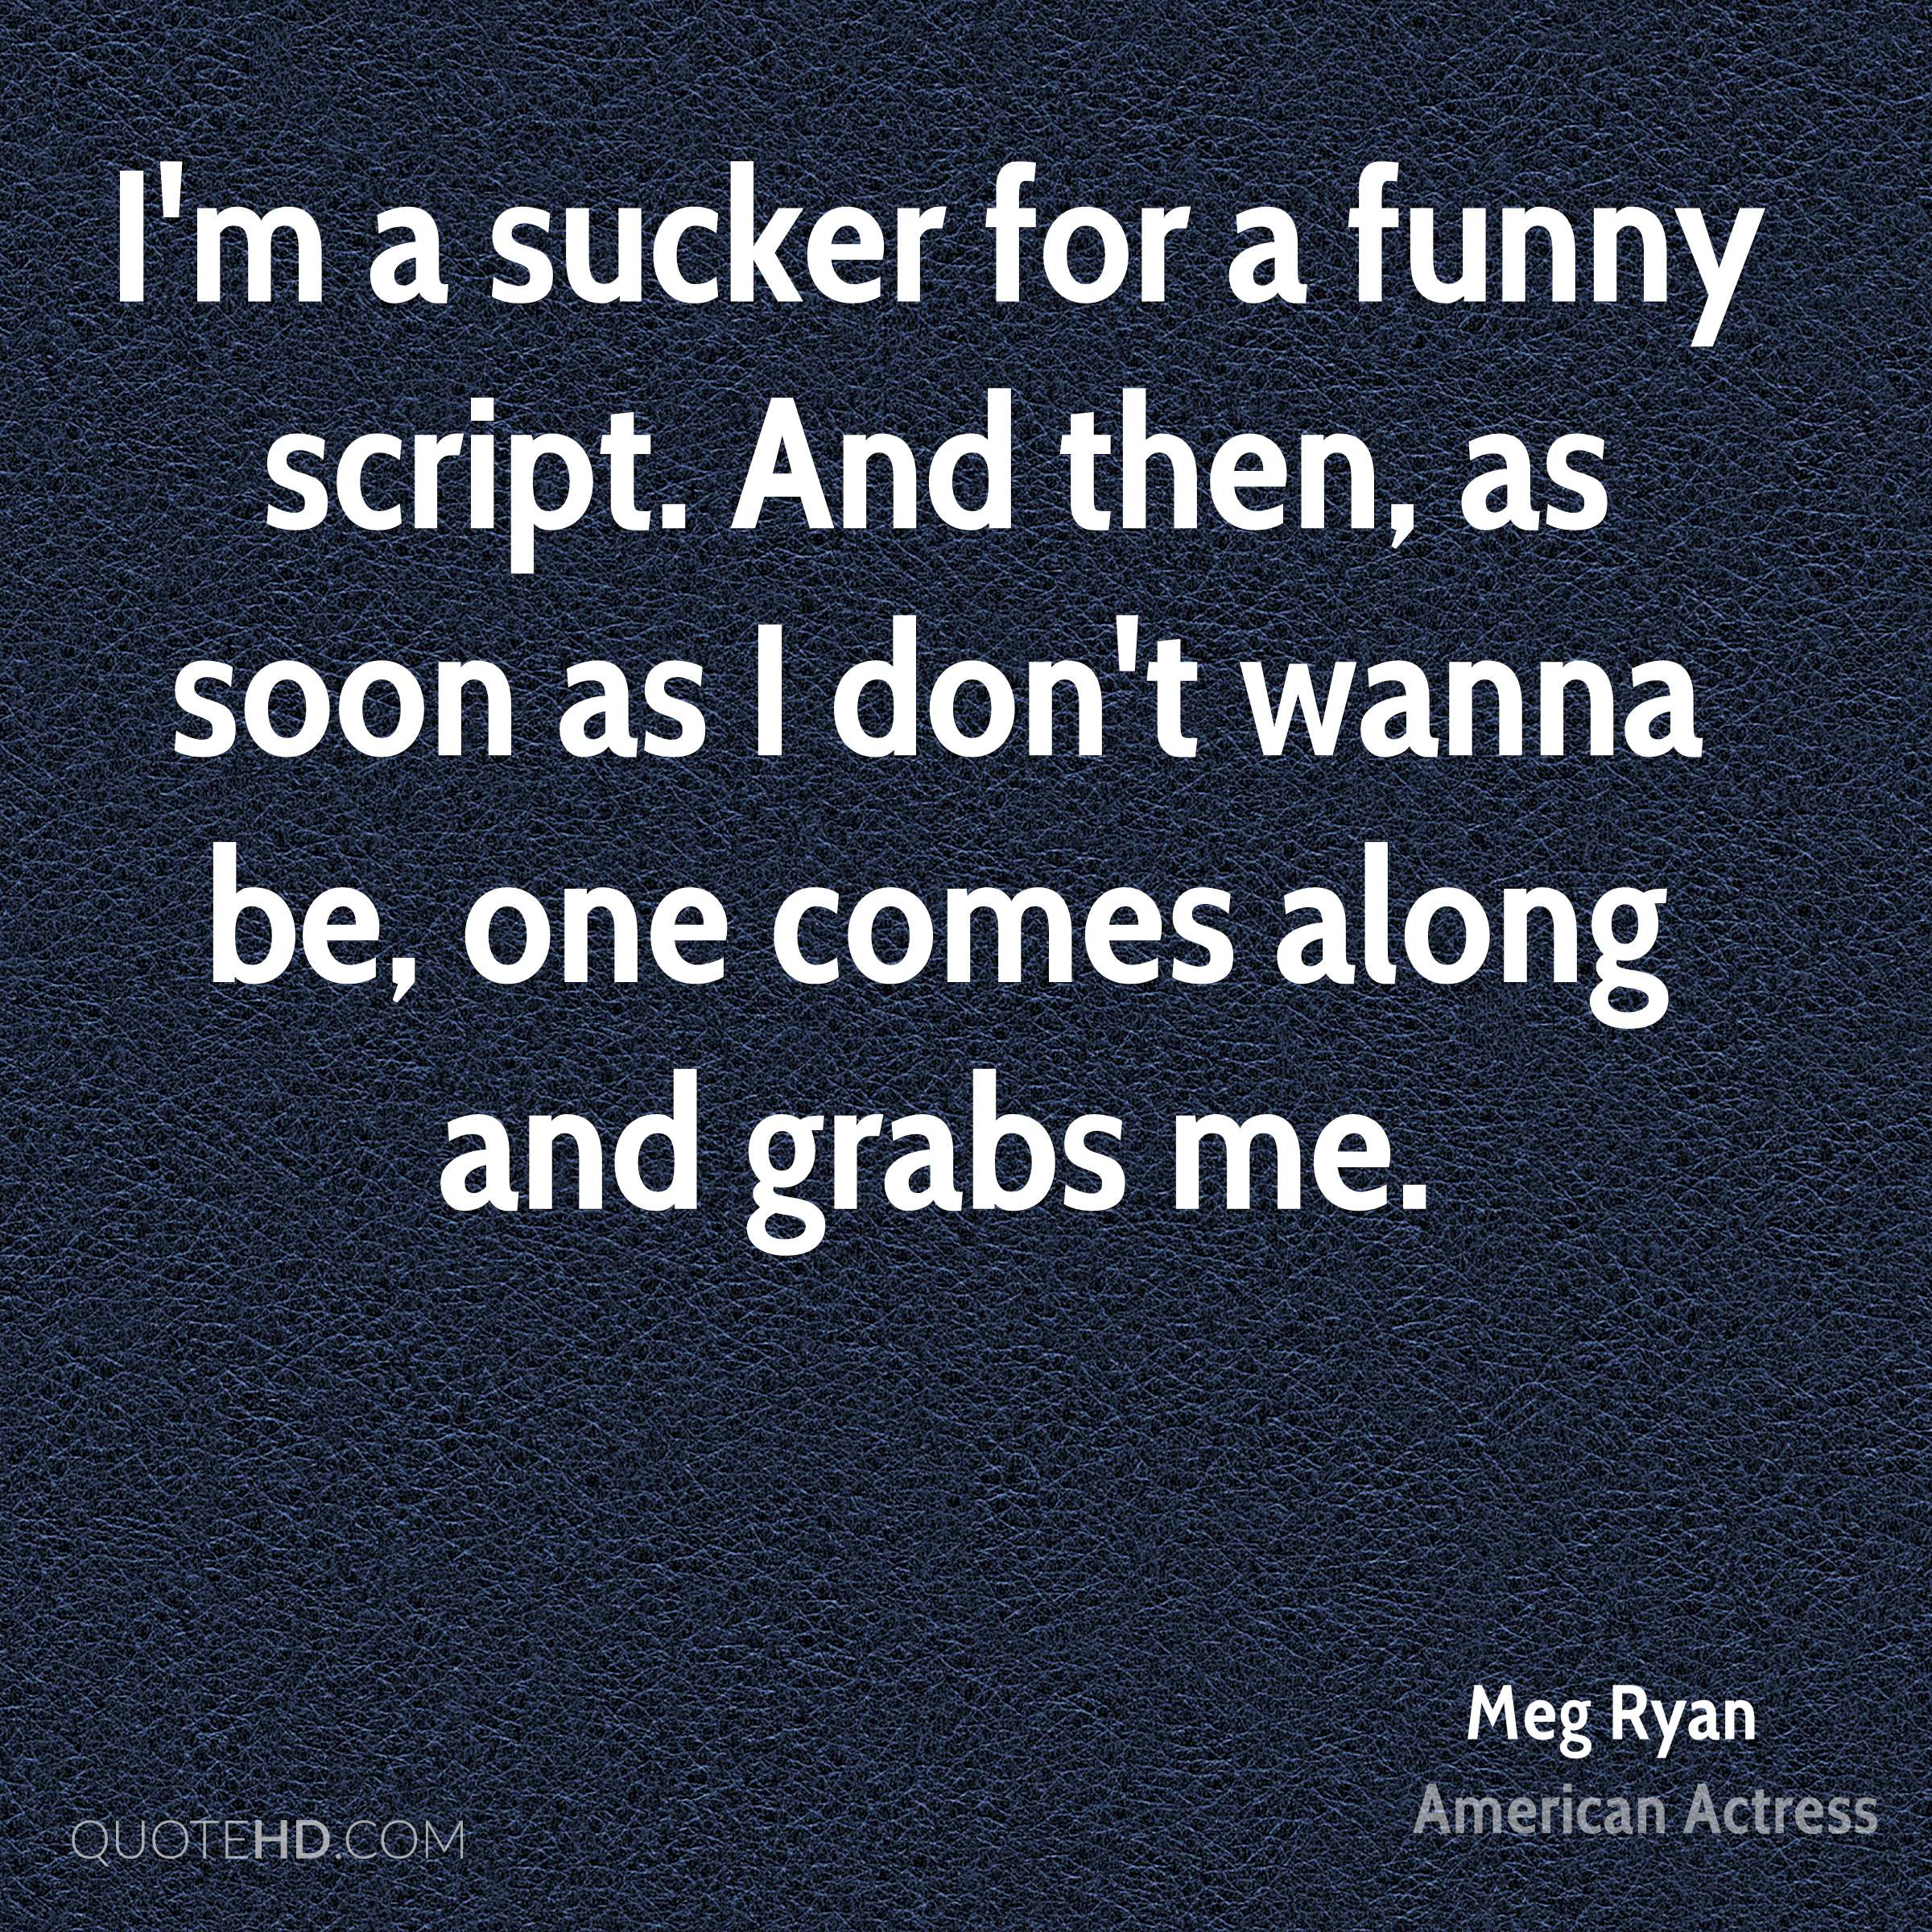 I'm a sucker for a funny script. And then, as soon as I don't wanna be, one comes along and grabs me.